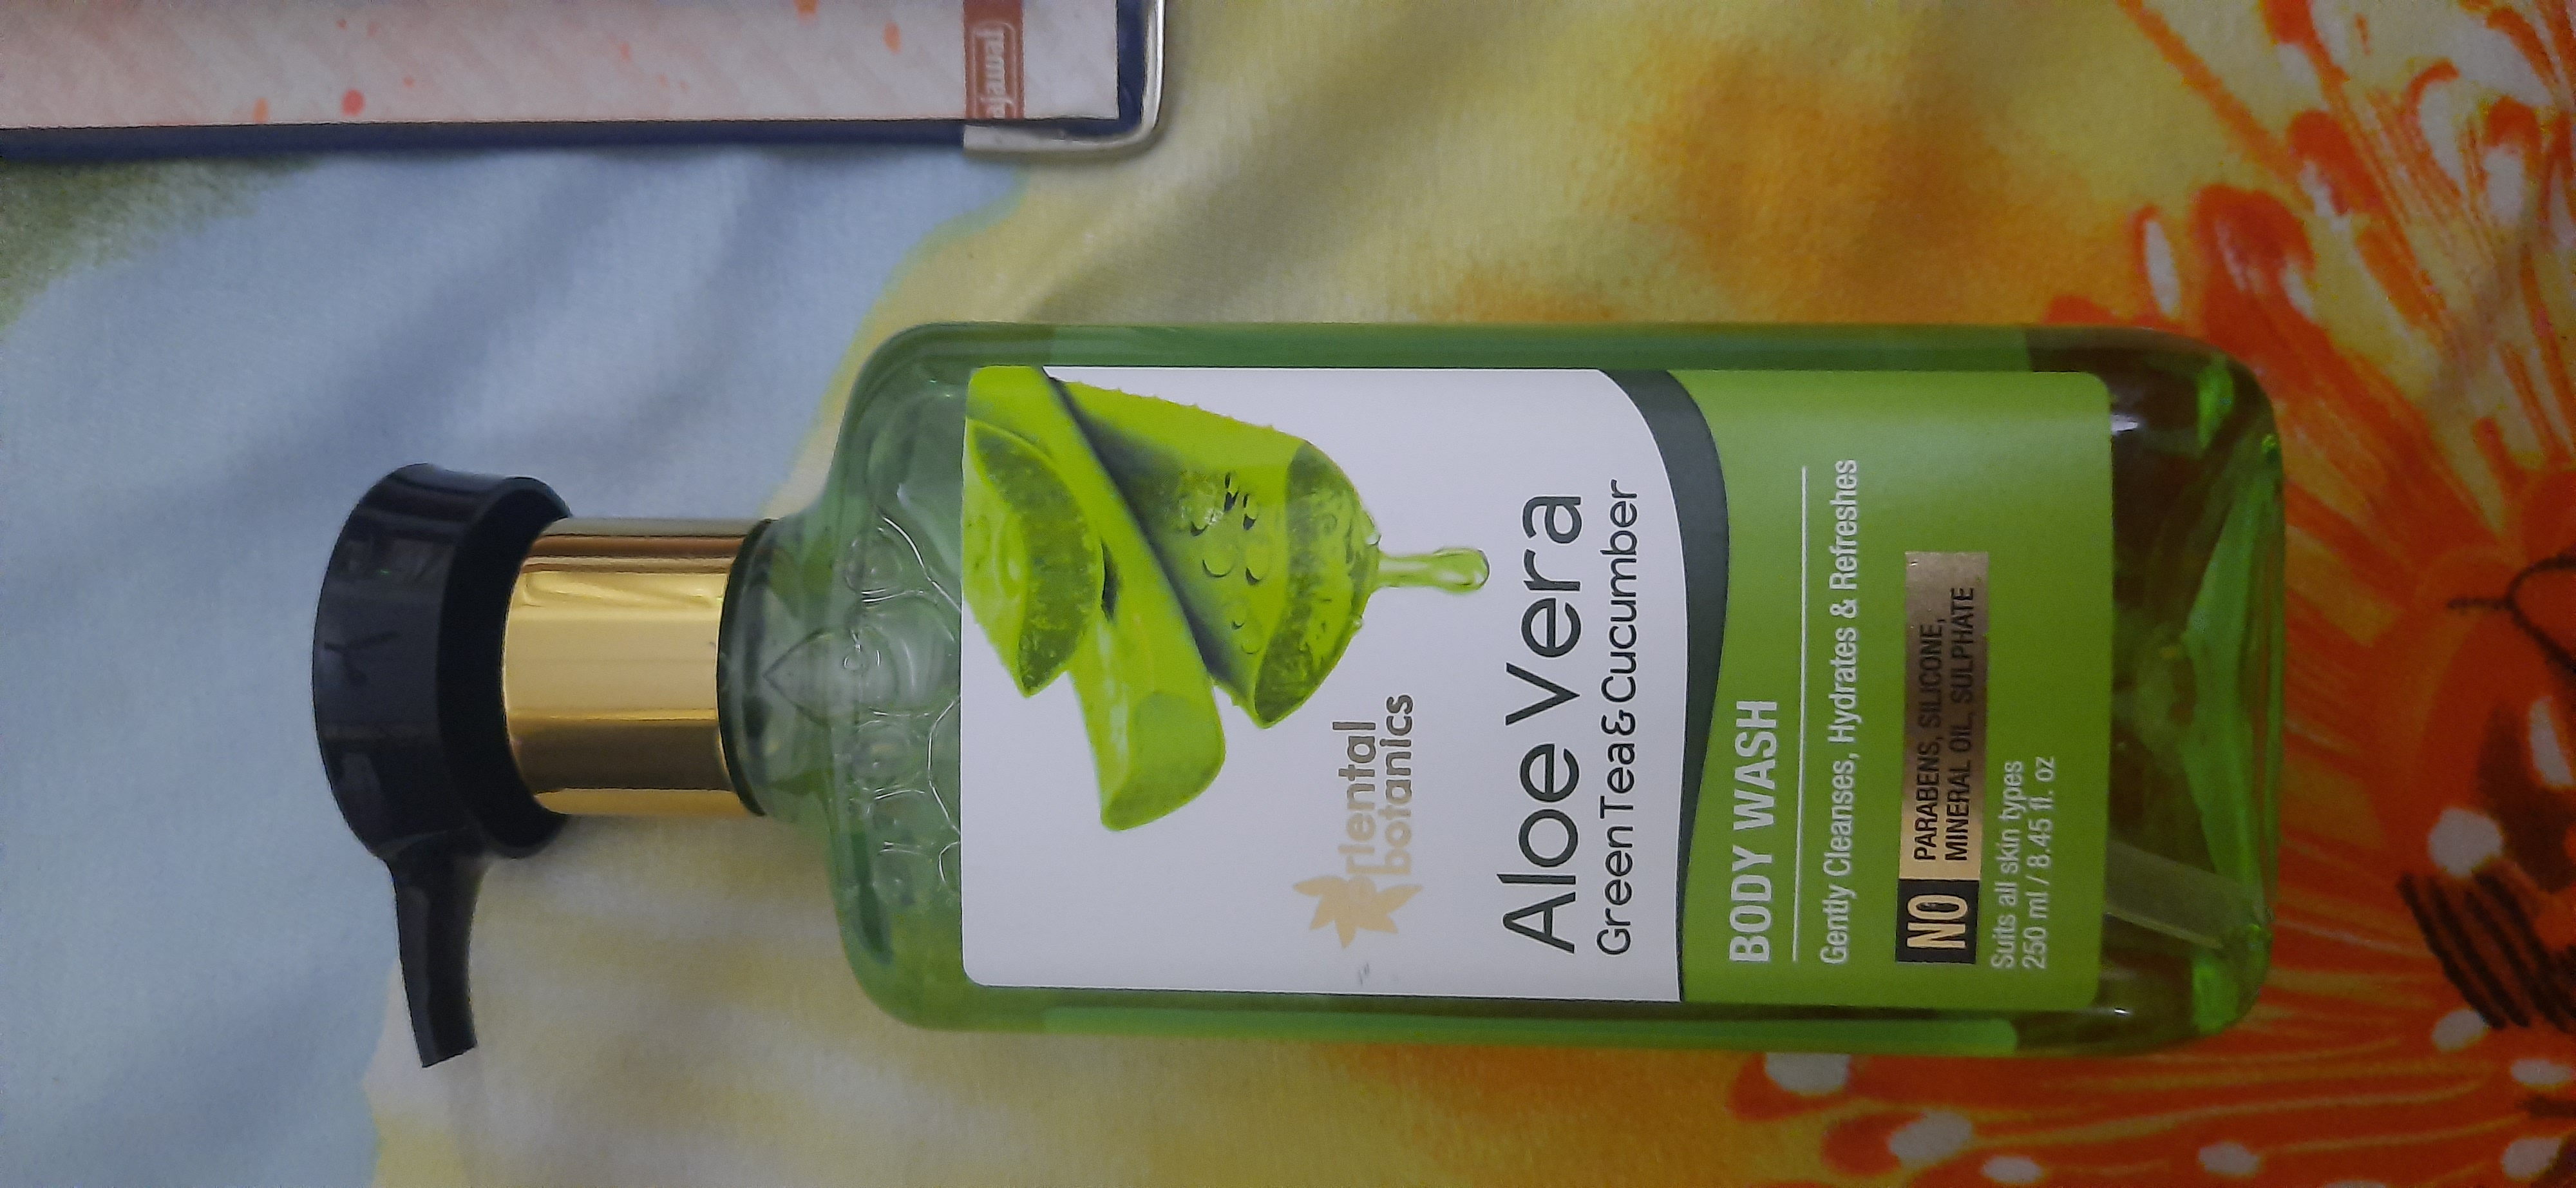 Oriental Botanics Aloe Vera Green Tea & Cucumber Body Wash-Amazing body wash-By nikitha_sancheti